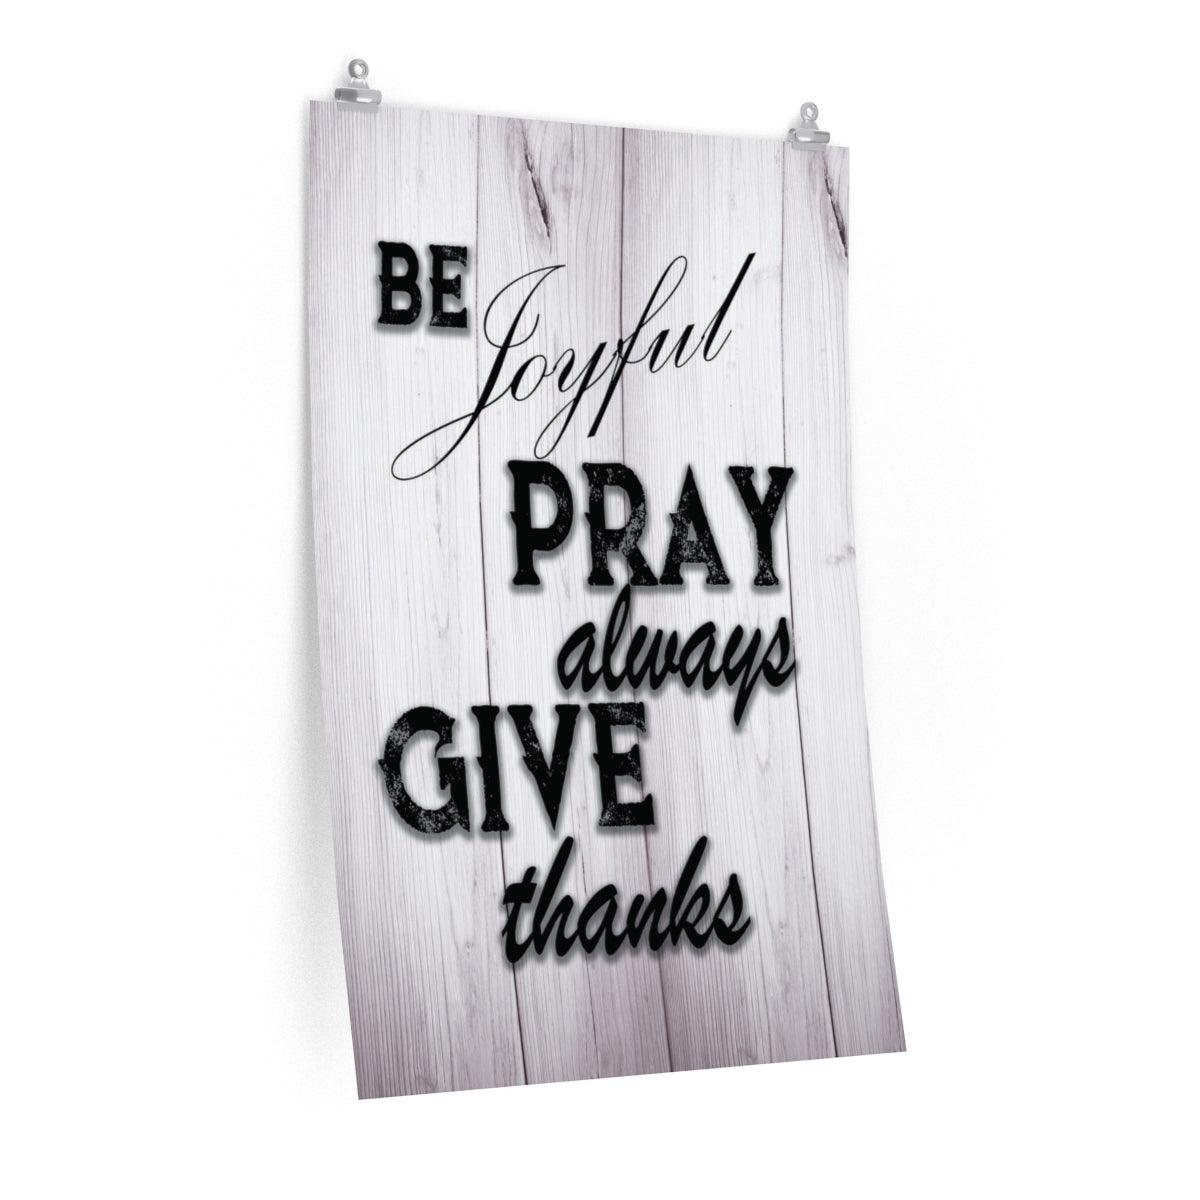 Be Joyful Pray Always Give Thanks Poster